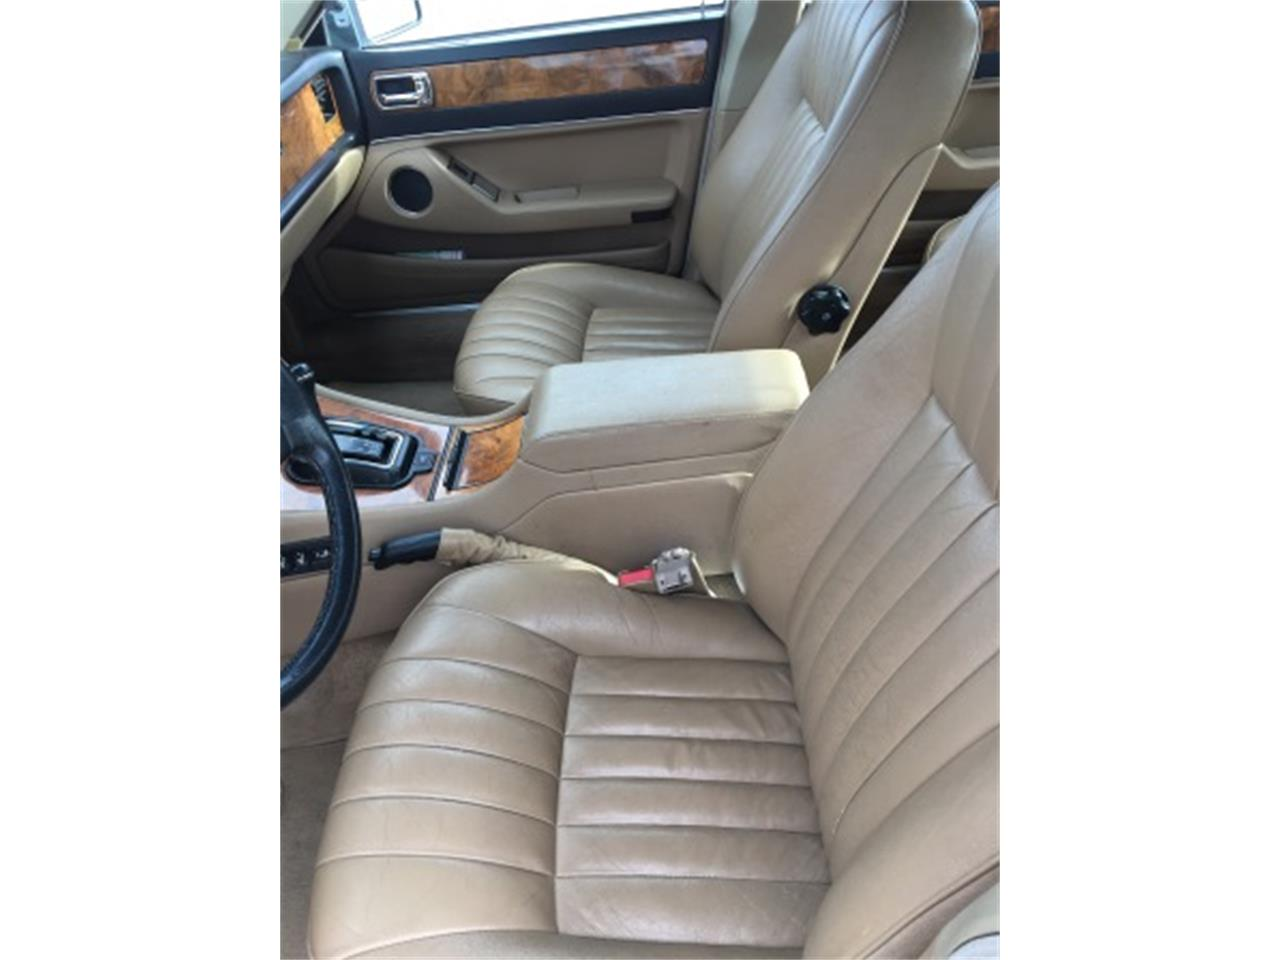 Large Picture of '91 Jaguar XJ6 located in Lusk Wyoming - $1,500.00 - L3B6